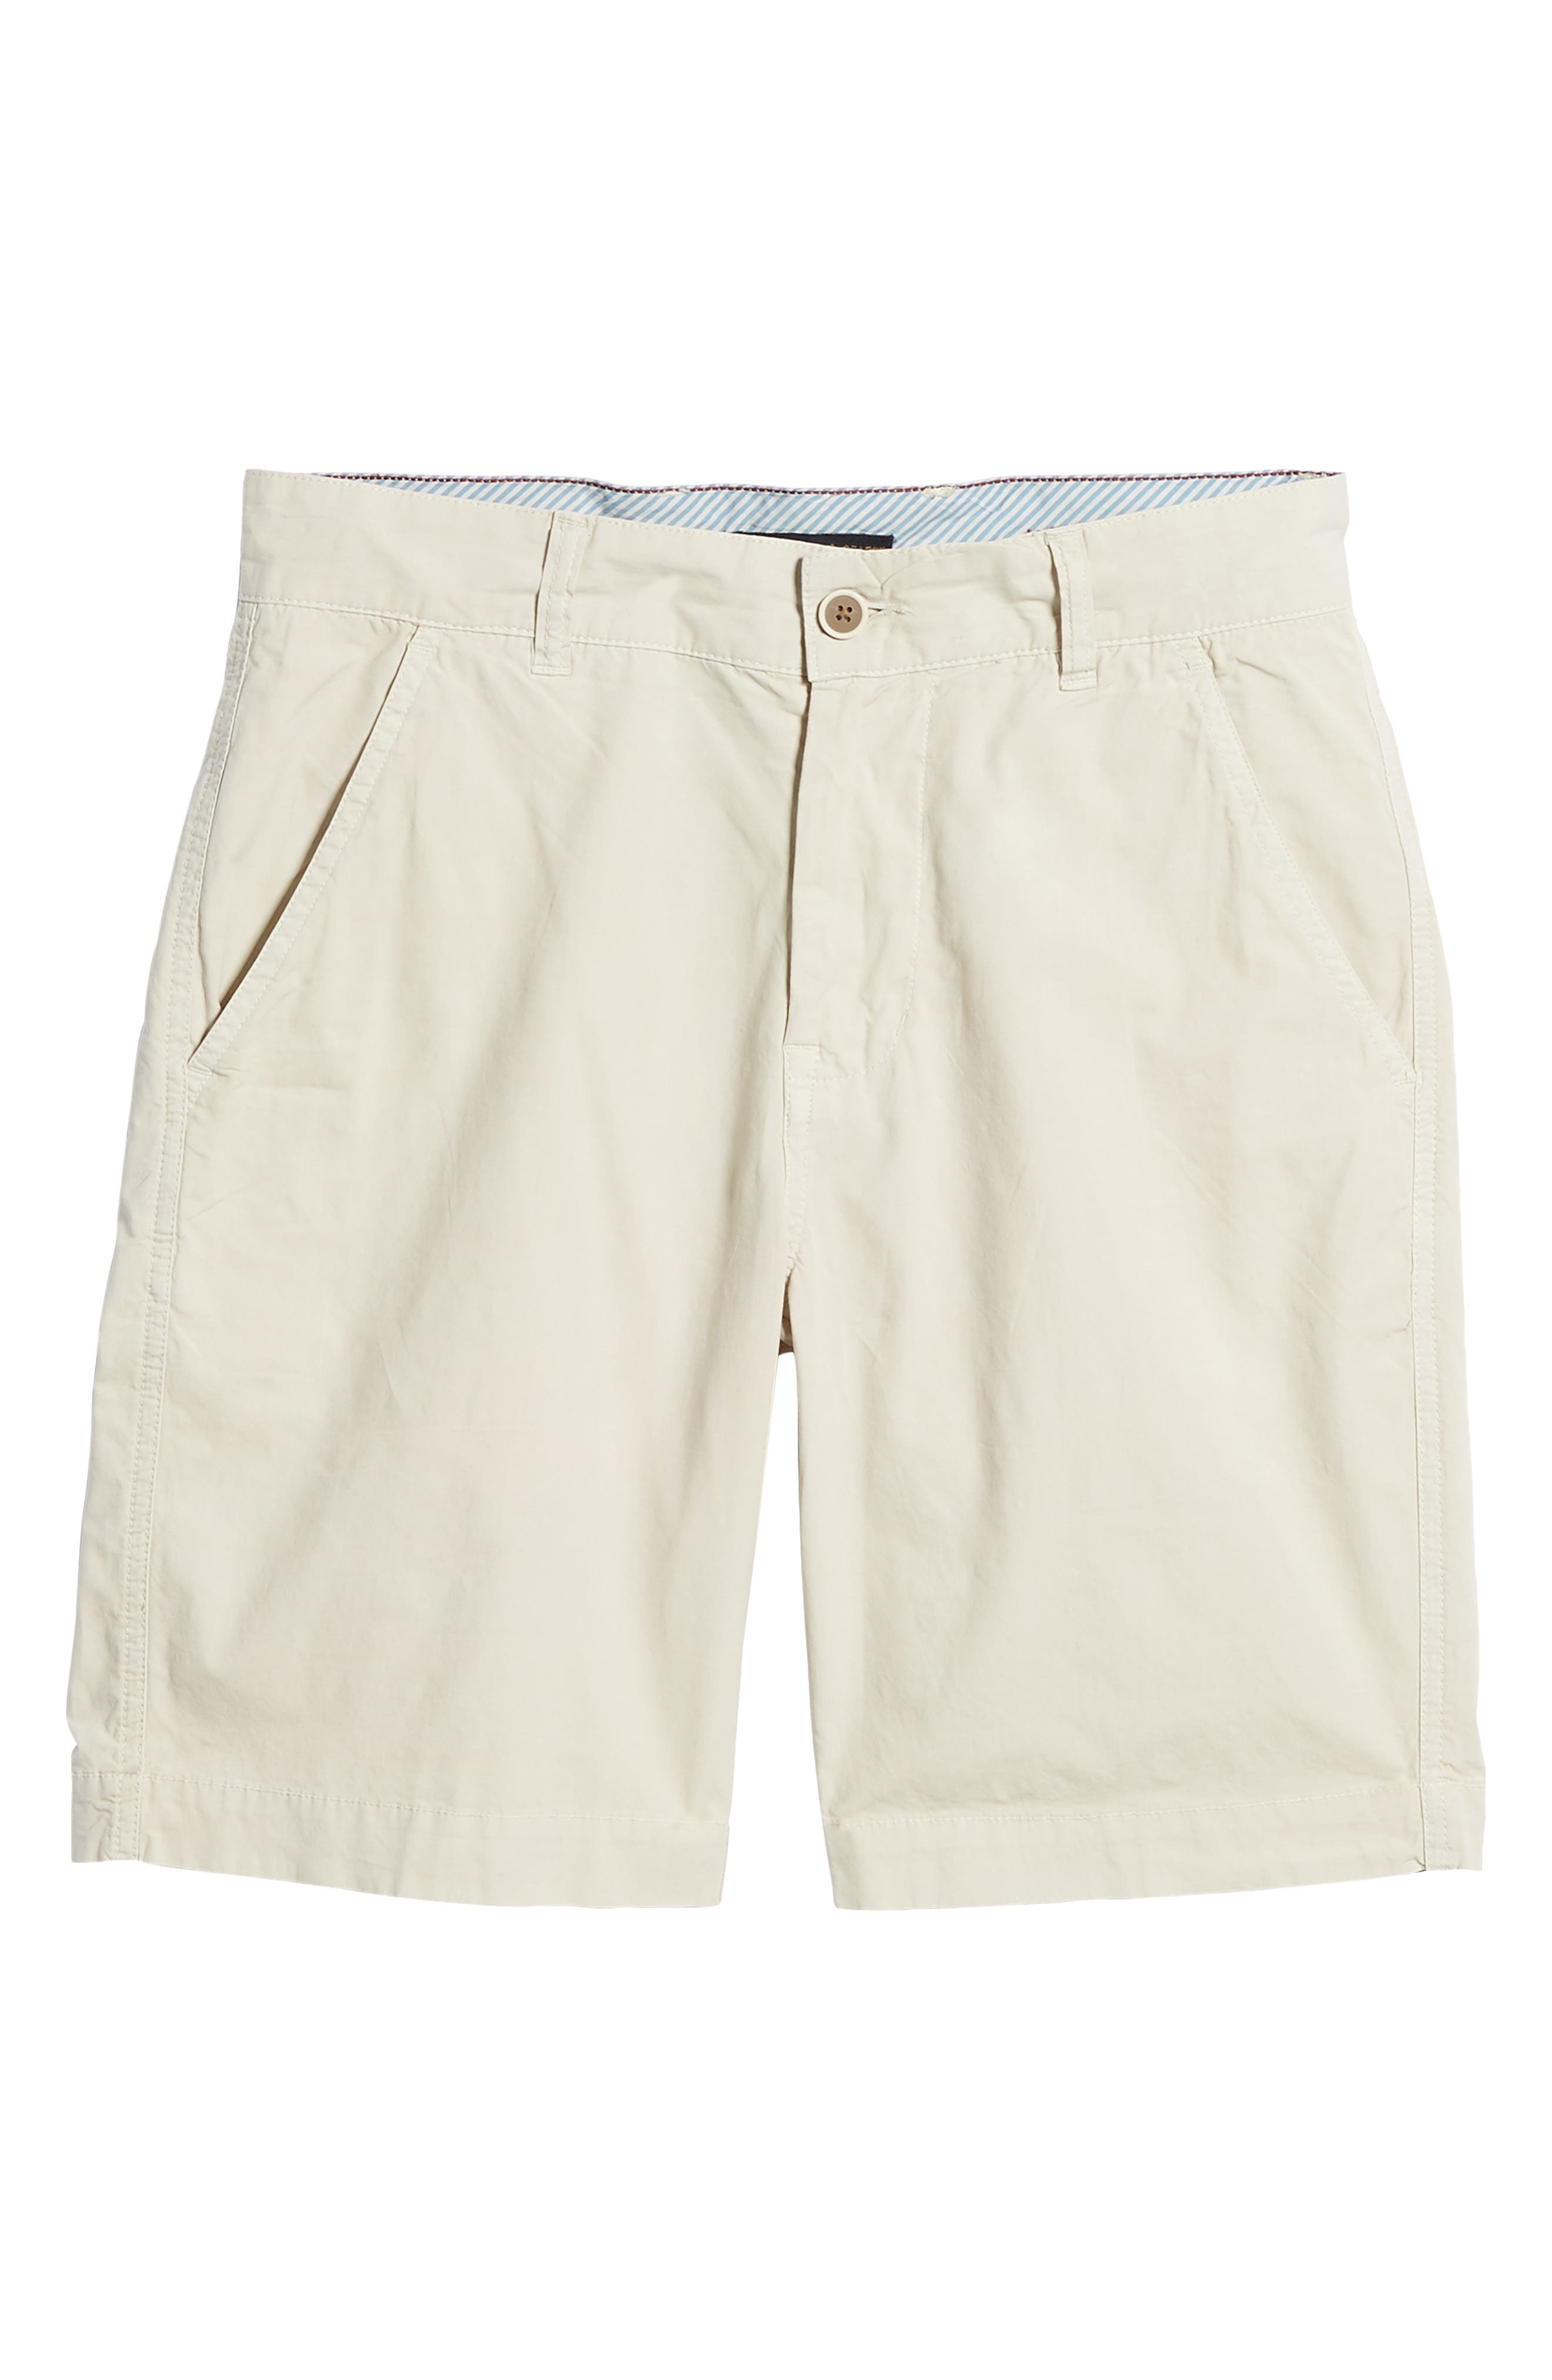 Stretch Poplin Shorts,                             Alternate thumbnail 6, color,                             020